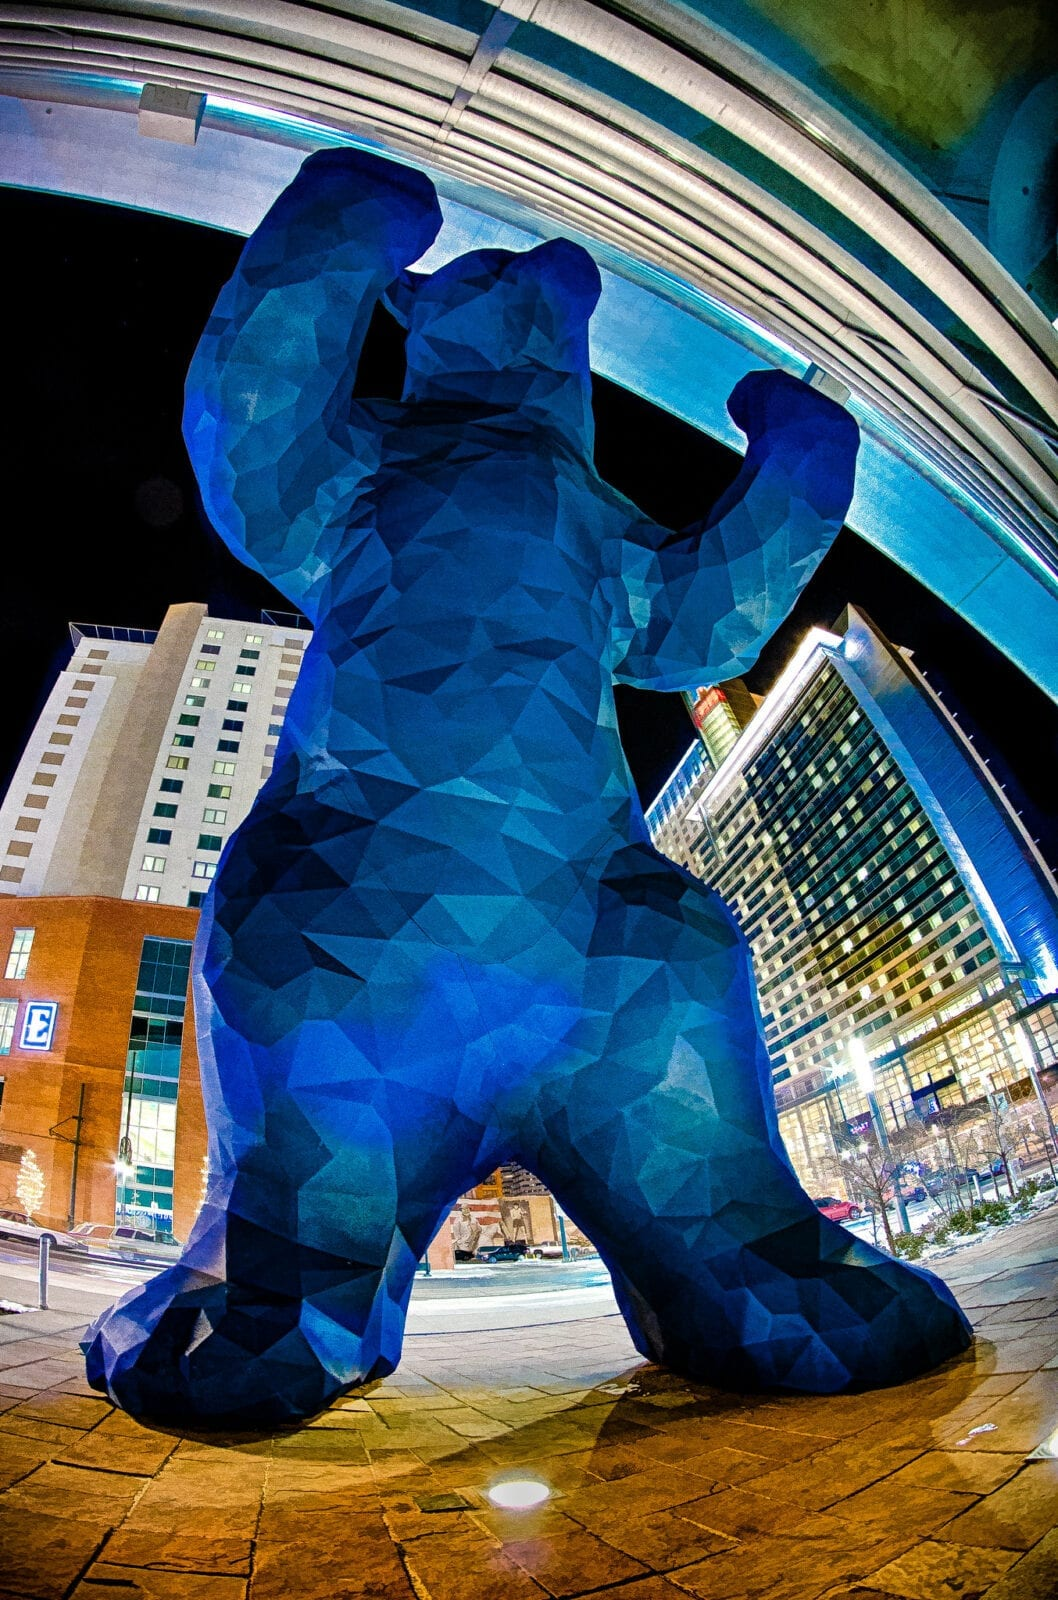 image of the big blue bear